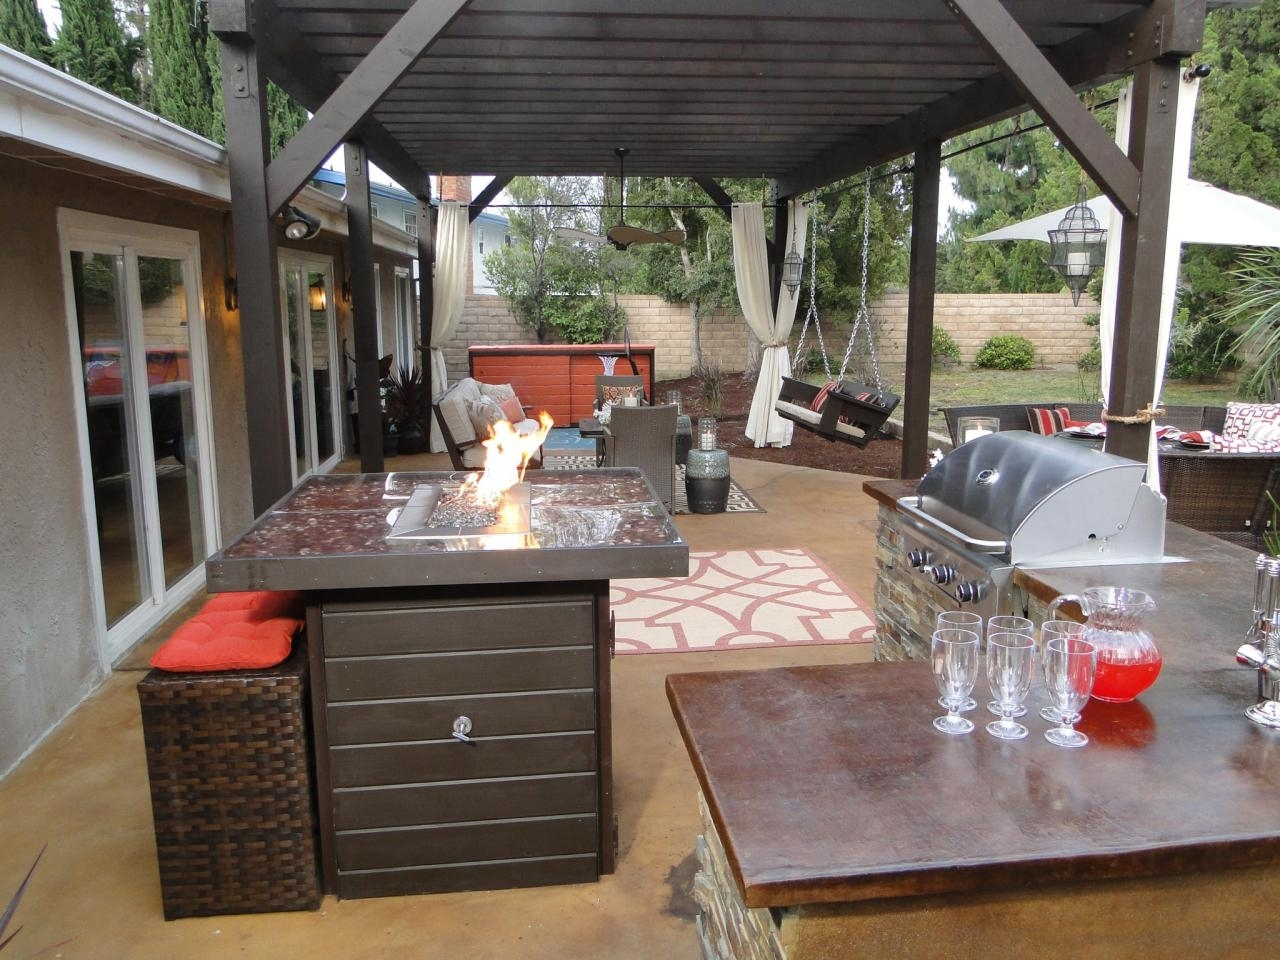 small outdoor kitchen ideas: pictures & tips from hgtv | hgtv